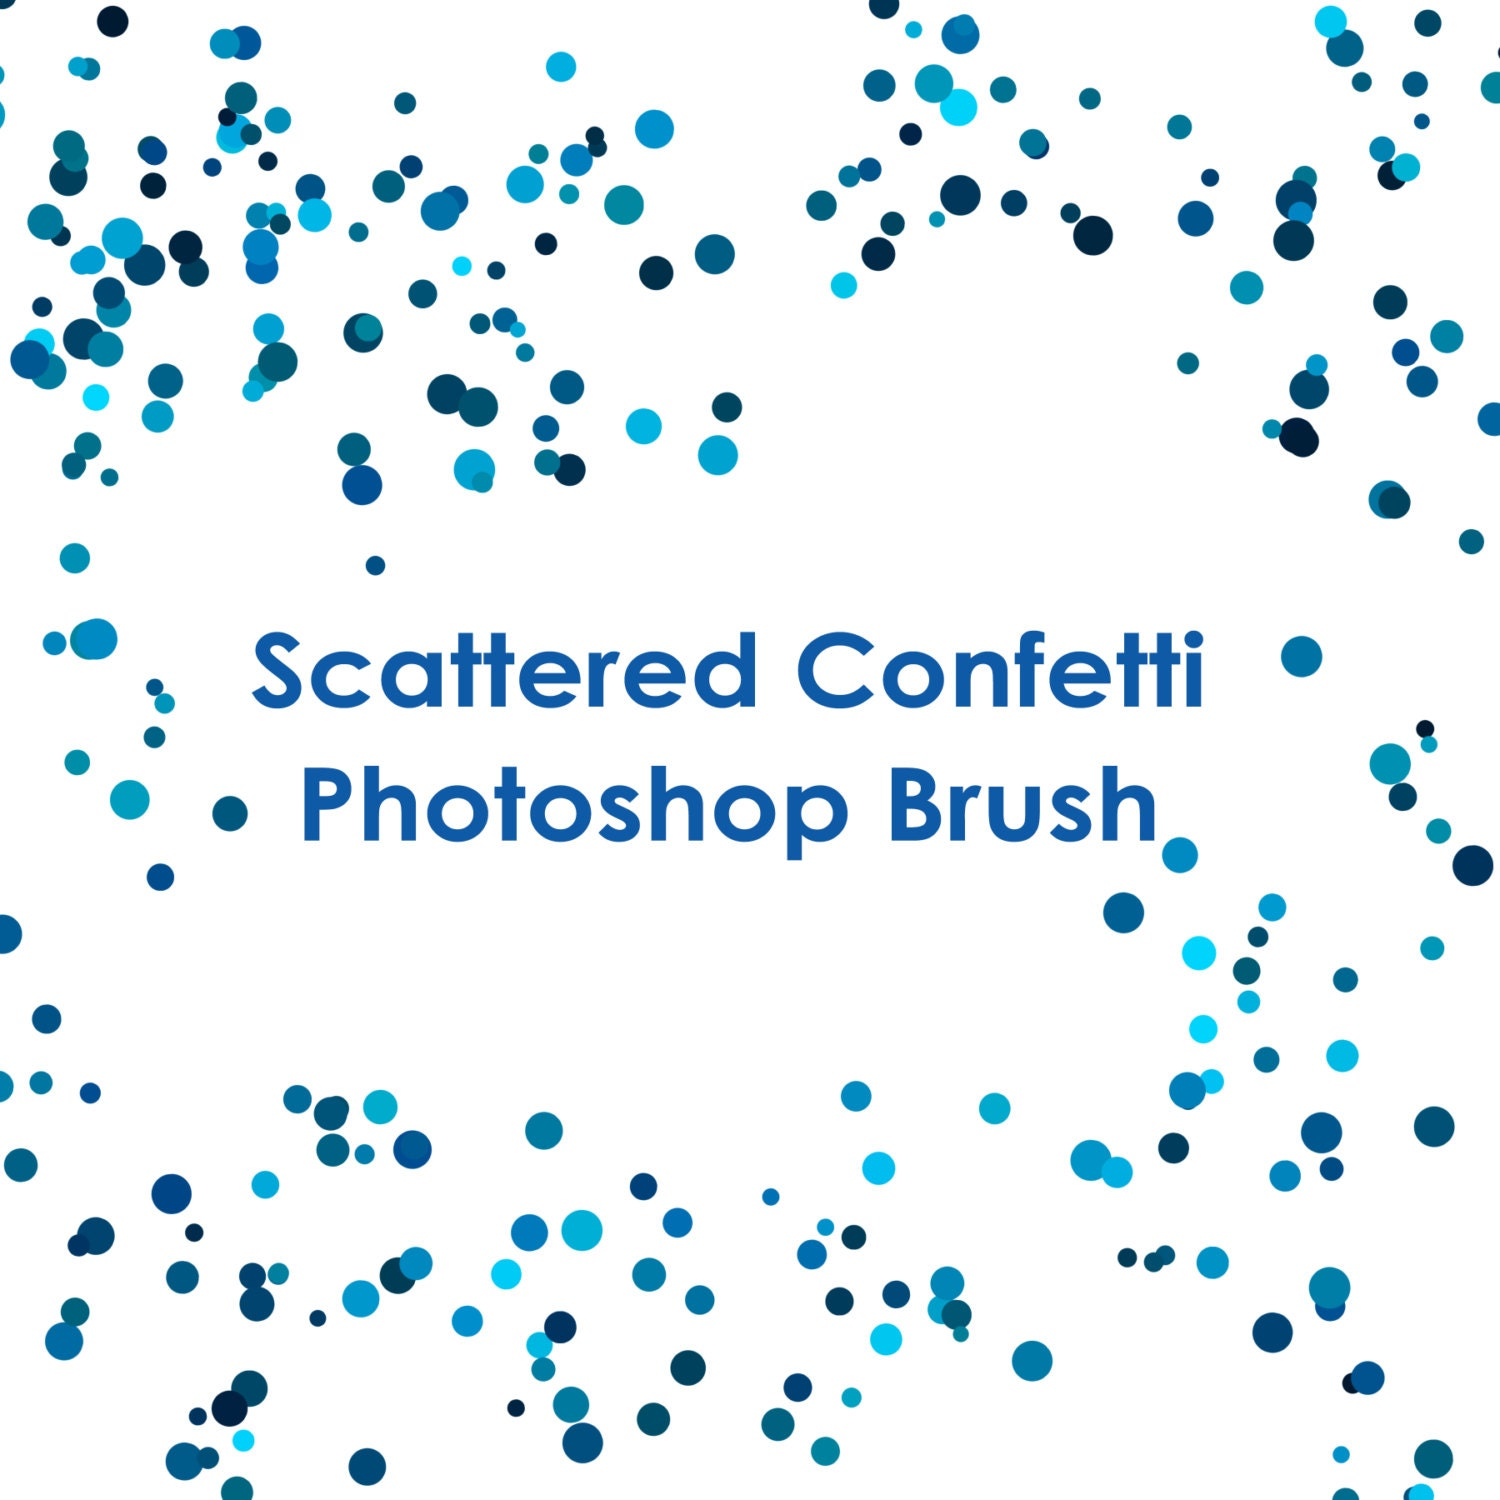 Add Bubbles With A Custom Bubble Brush - Photoshop Tutorial